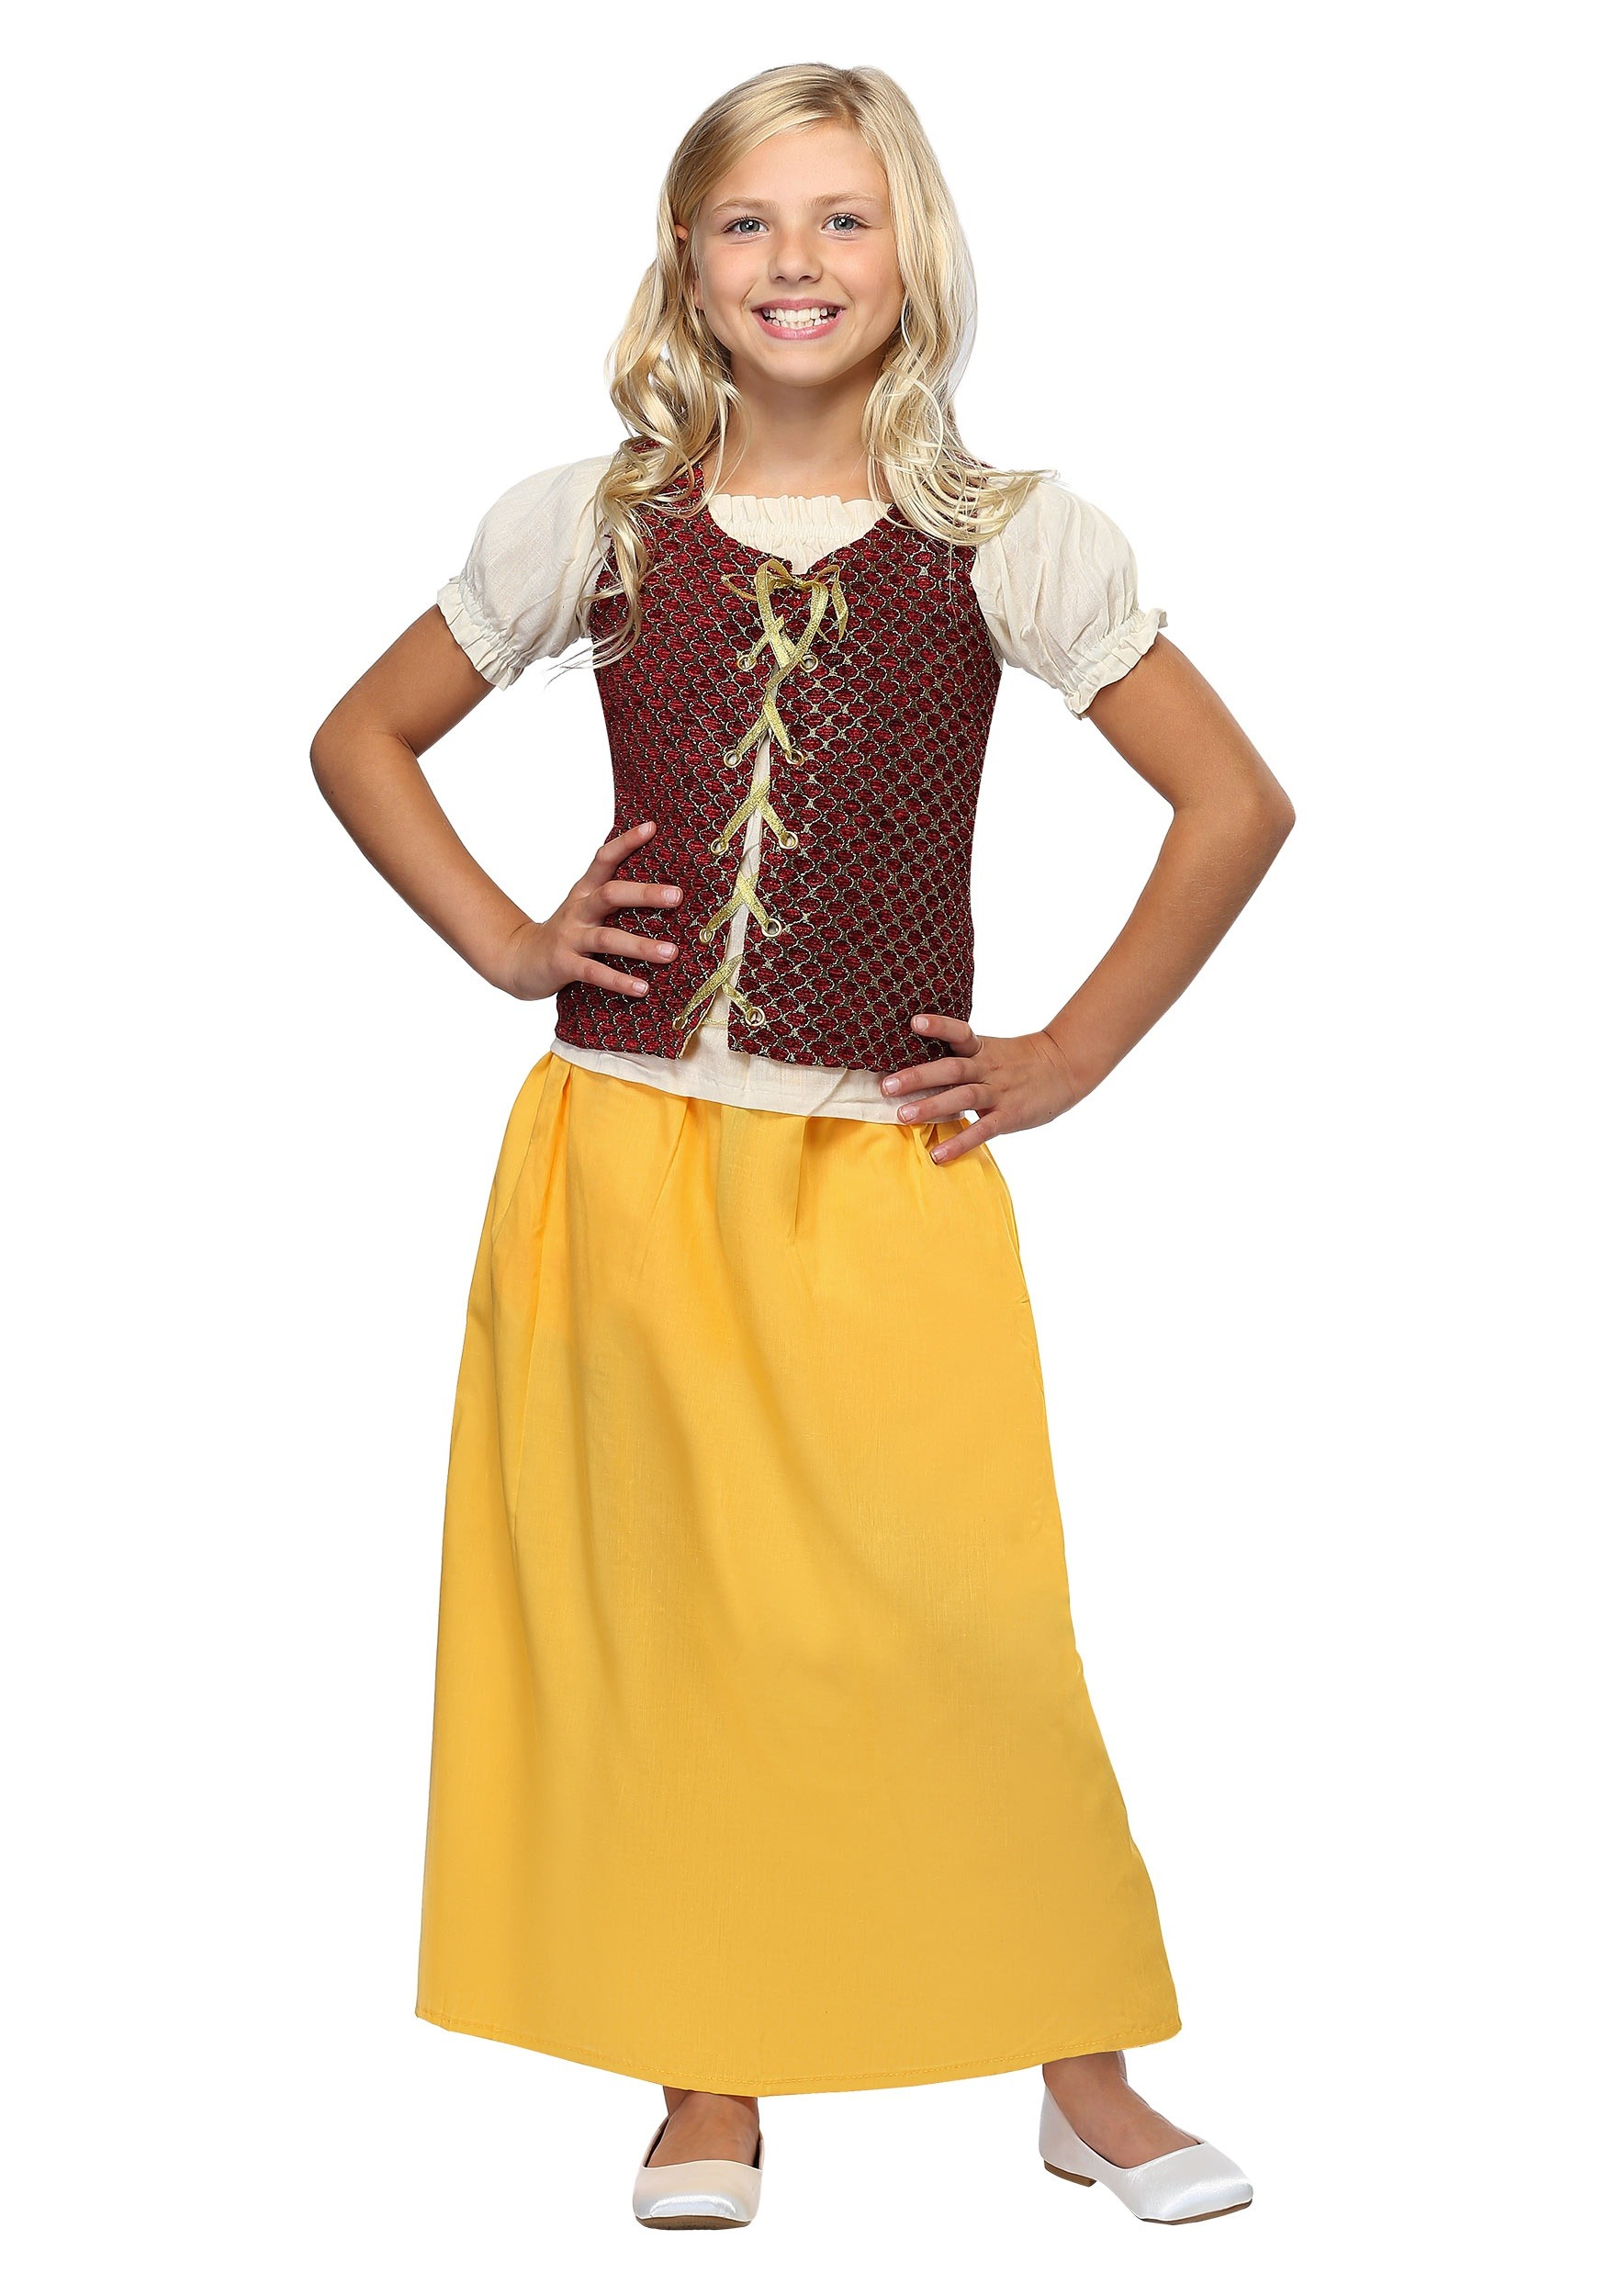 d46f9d61c Girls Red Peasant Dress - image 1 of 1 zoomed image